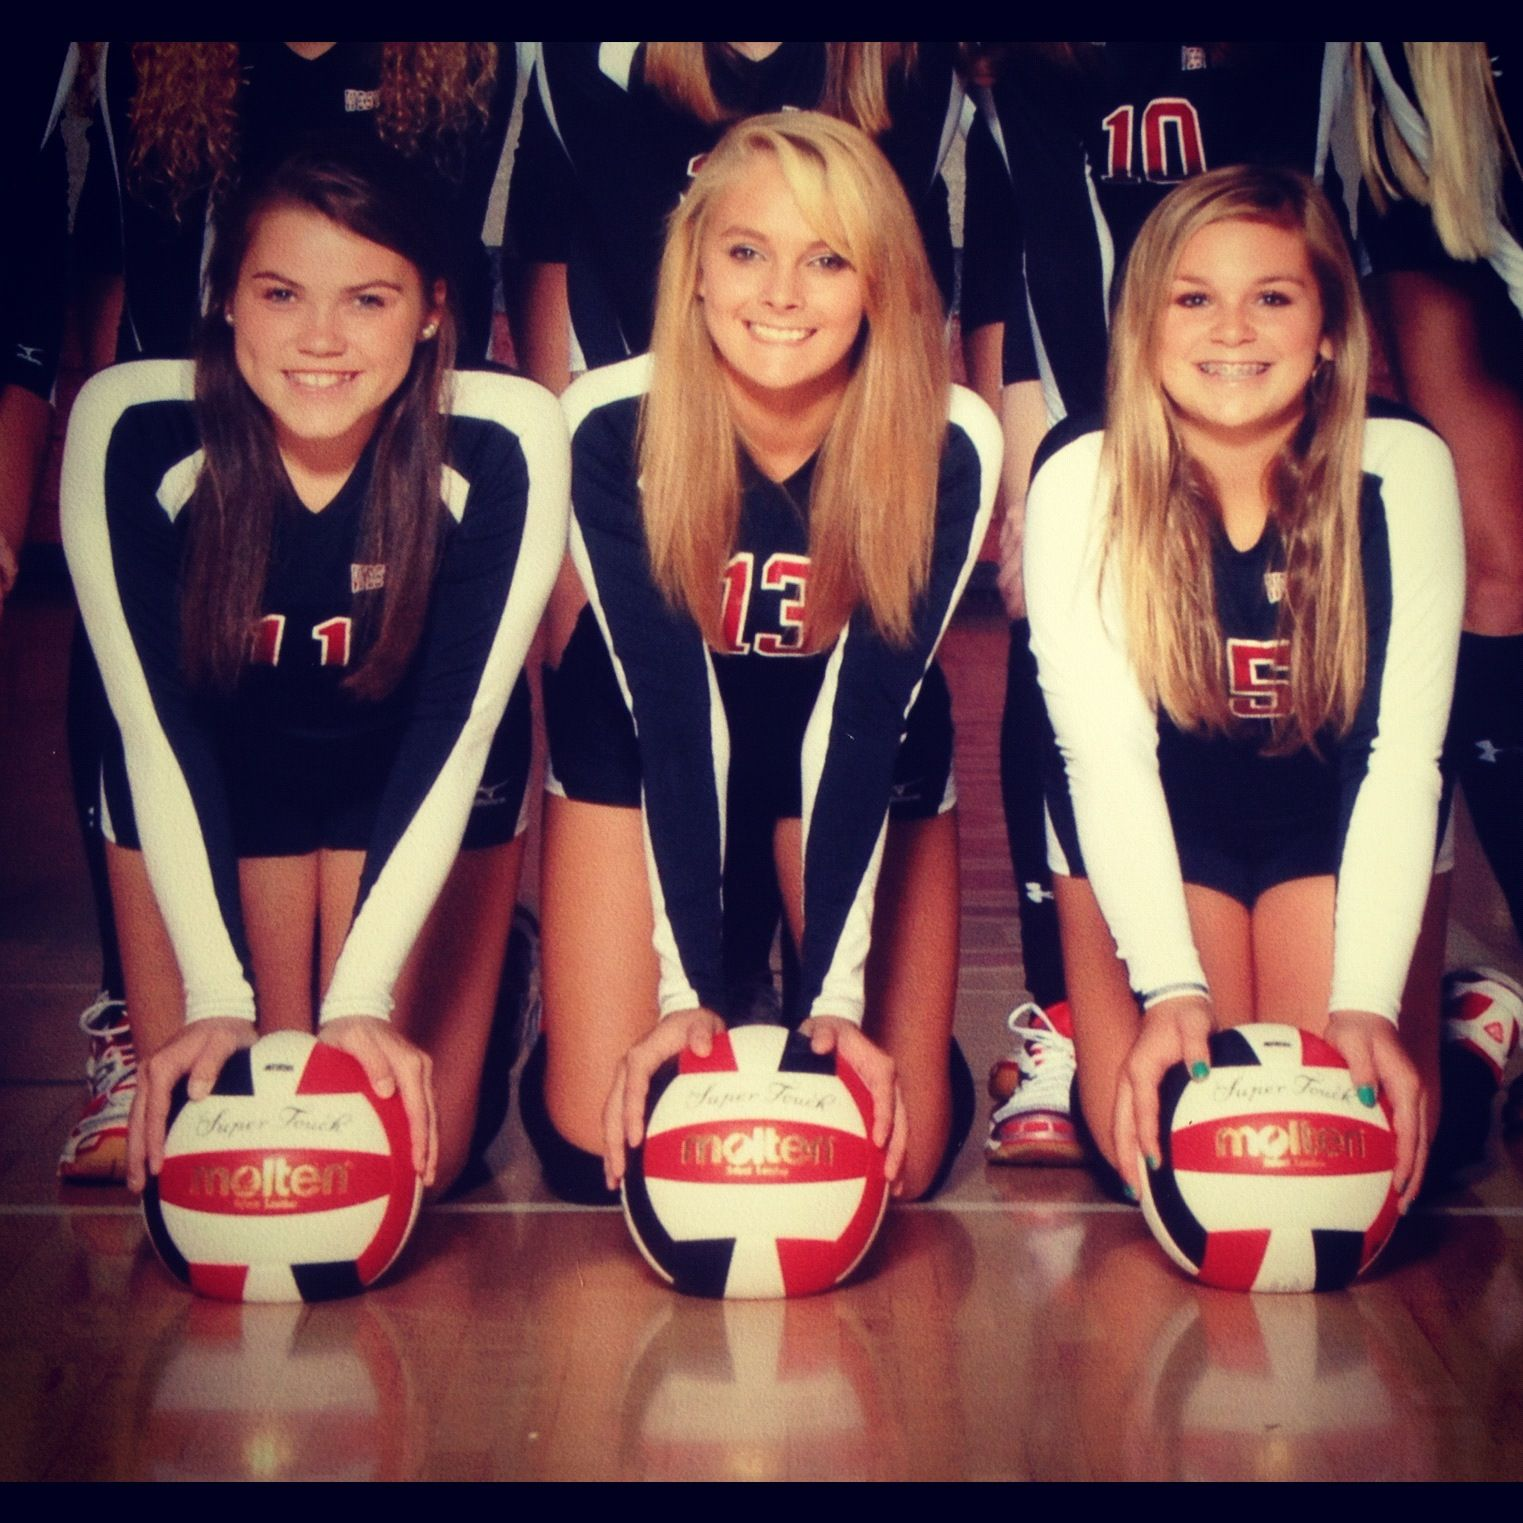 Volleyball Volleyball Pictures Volleyball Team Pictures Volleyball Team Photos